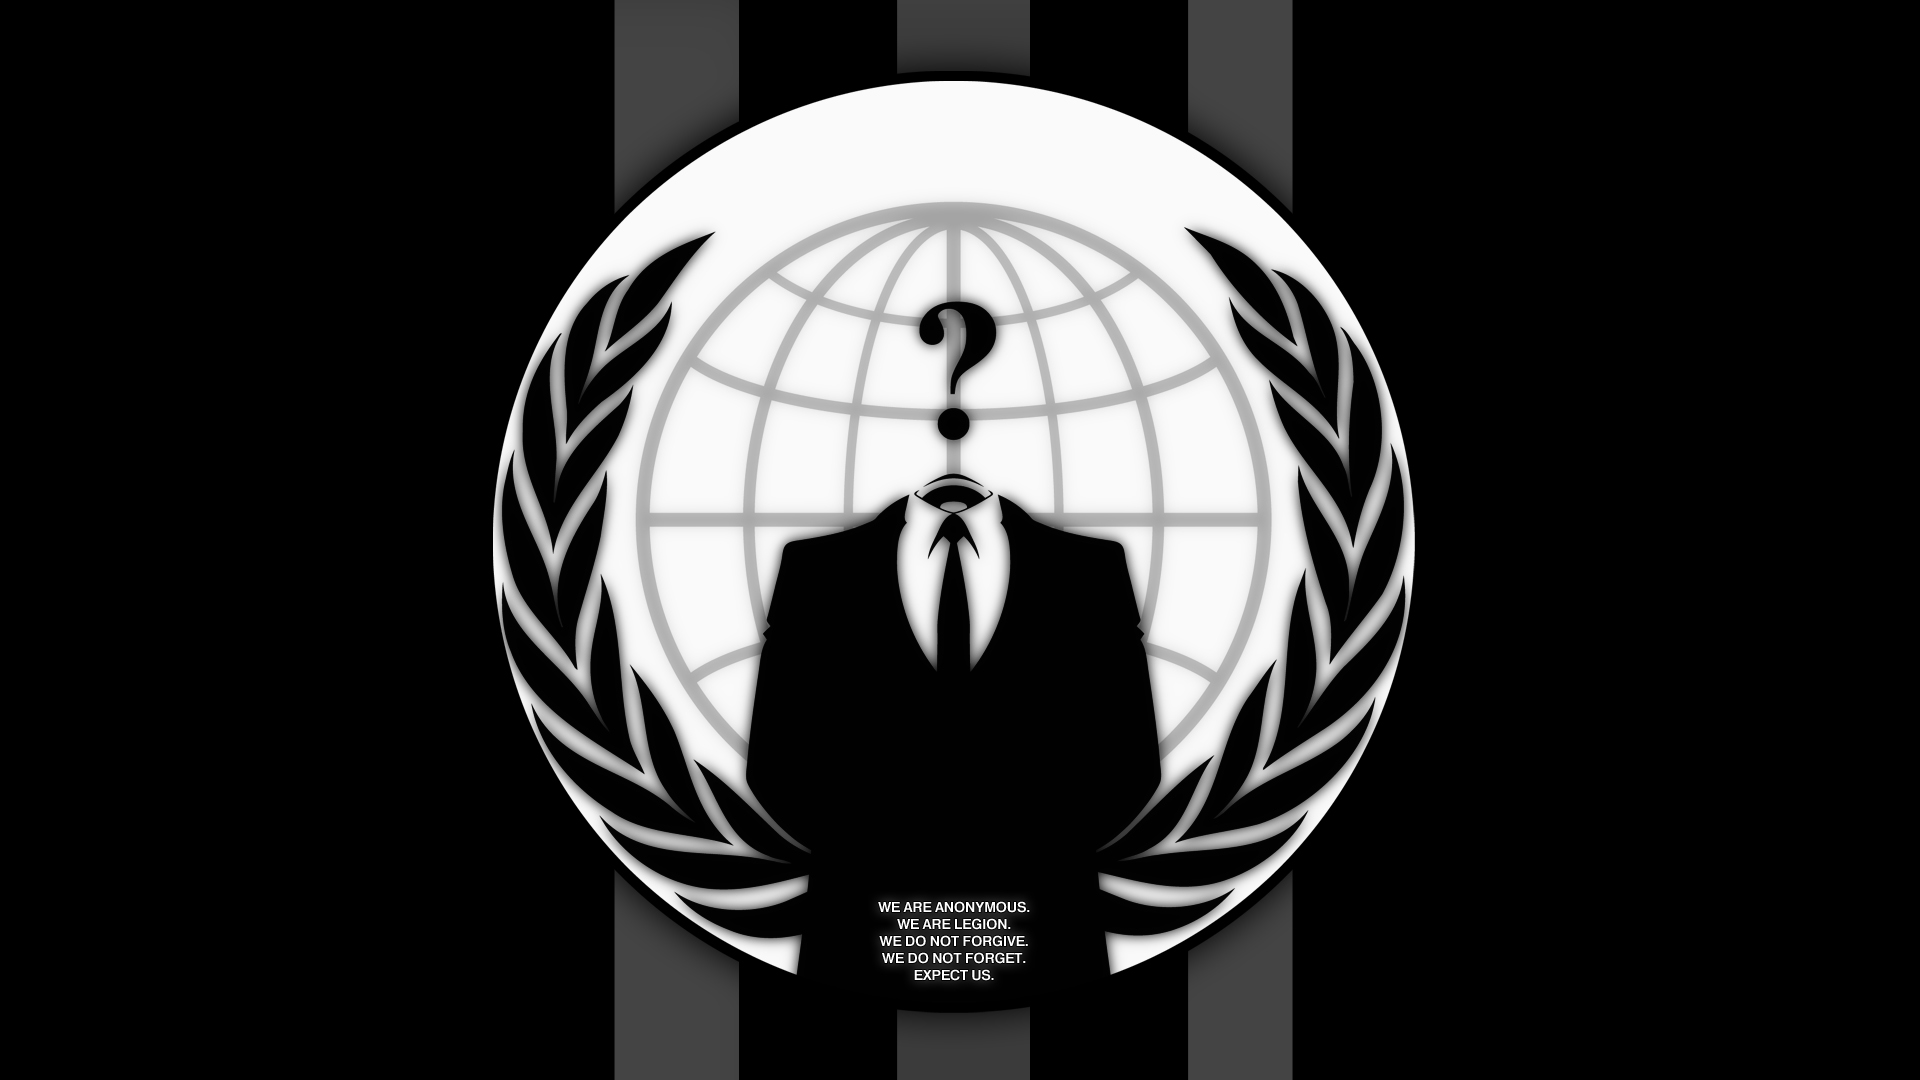 Anonymous Hacker Live Wallpaper - WallpaperSafari